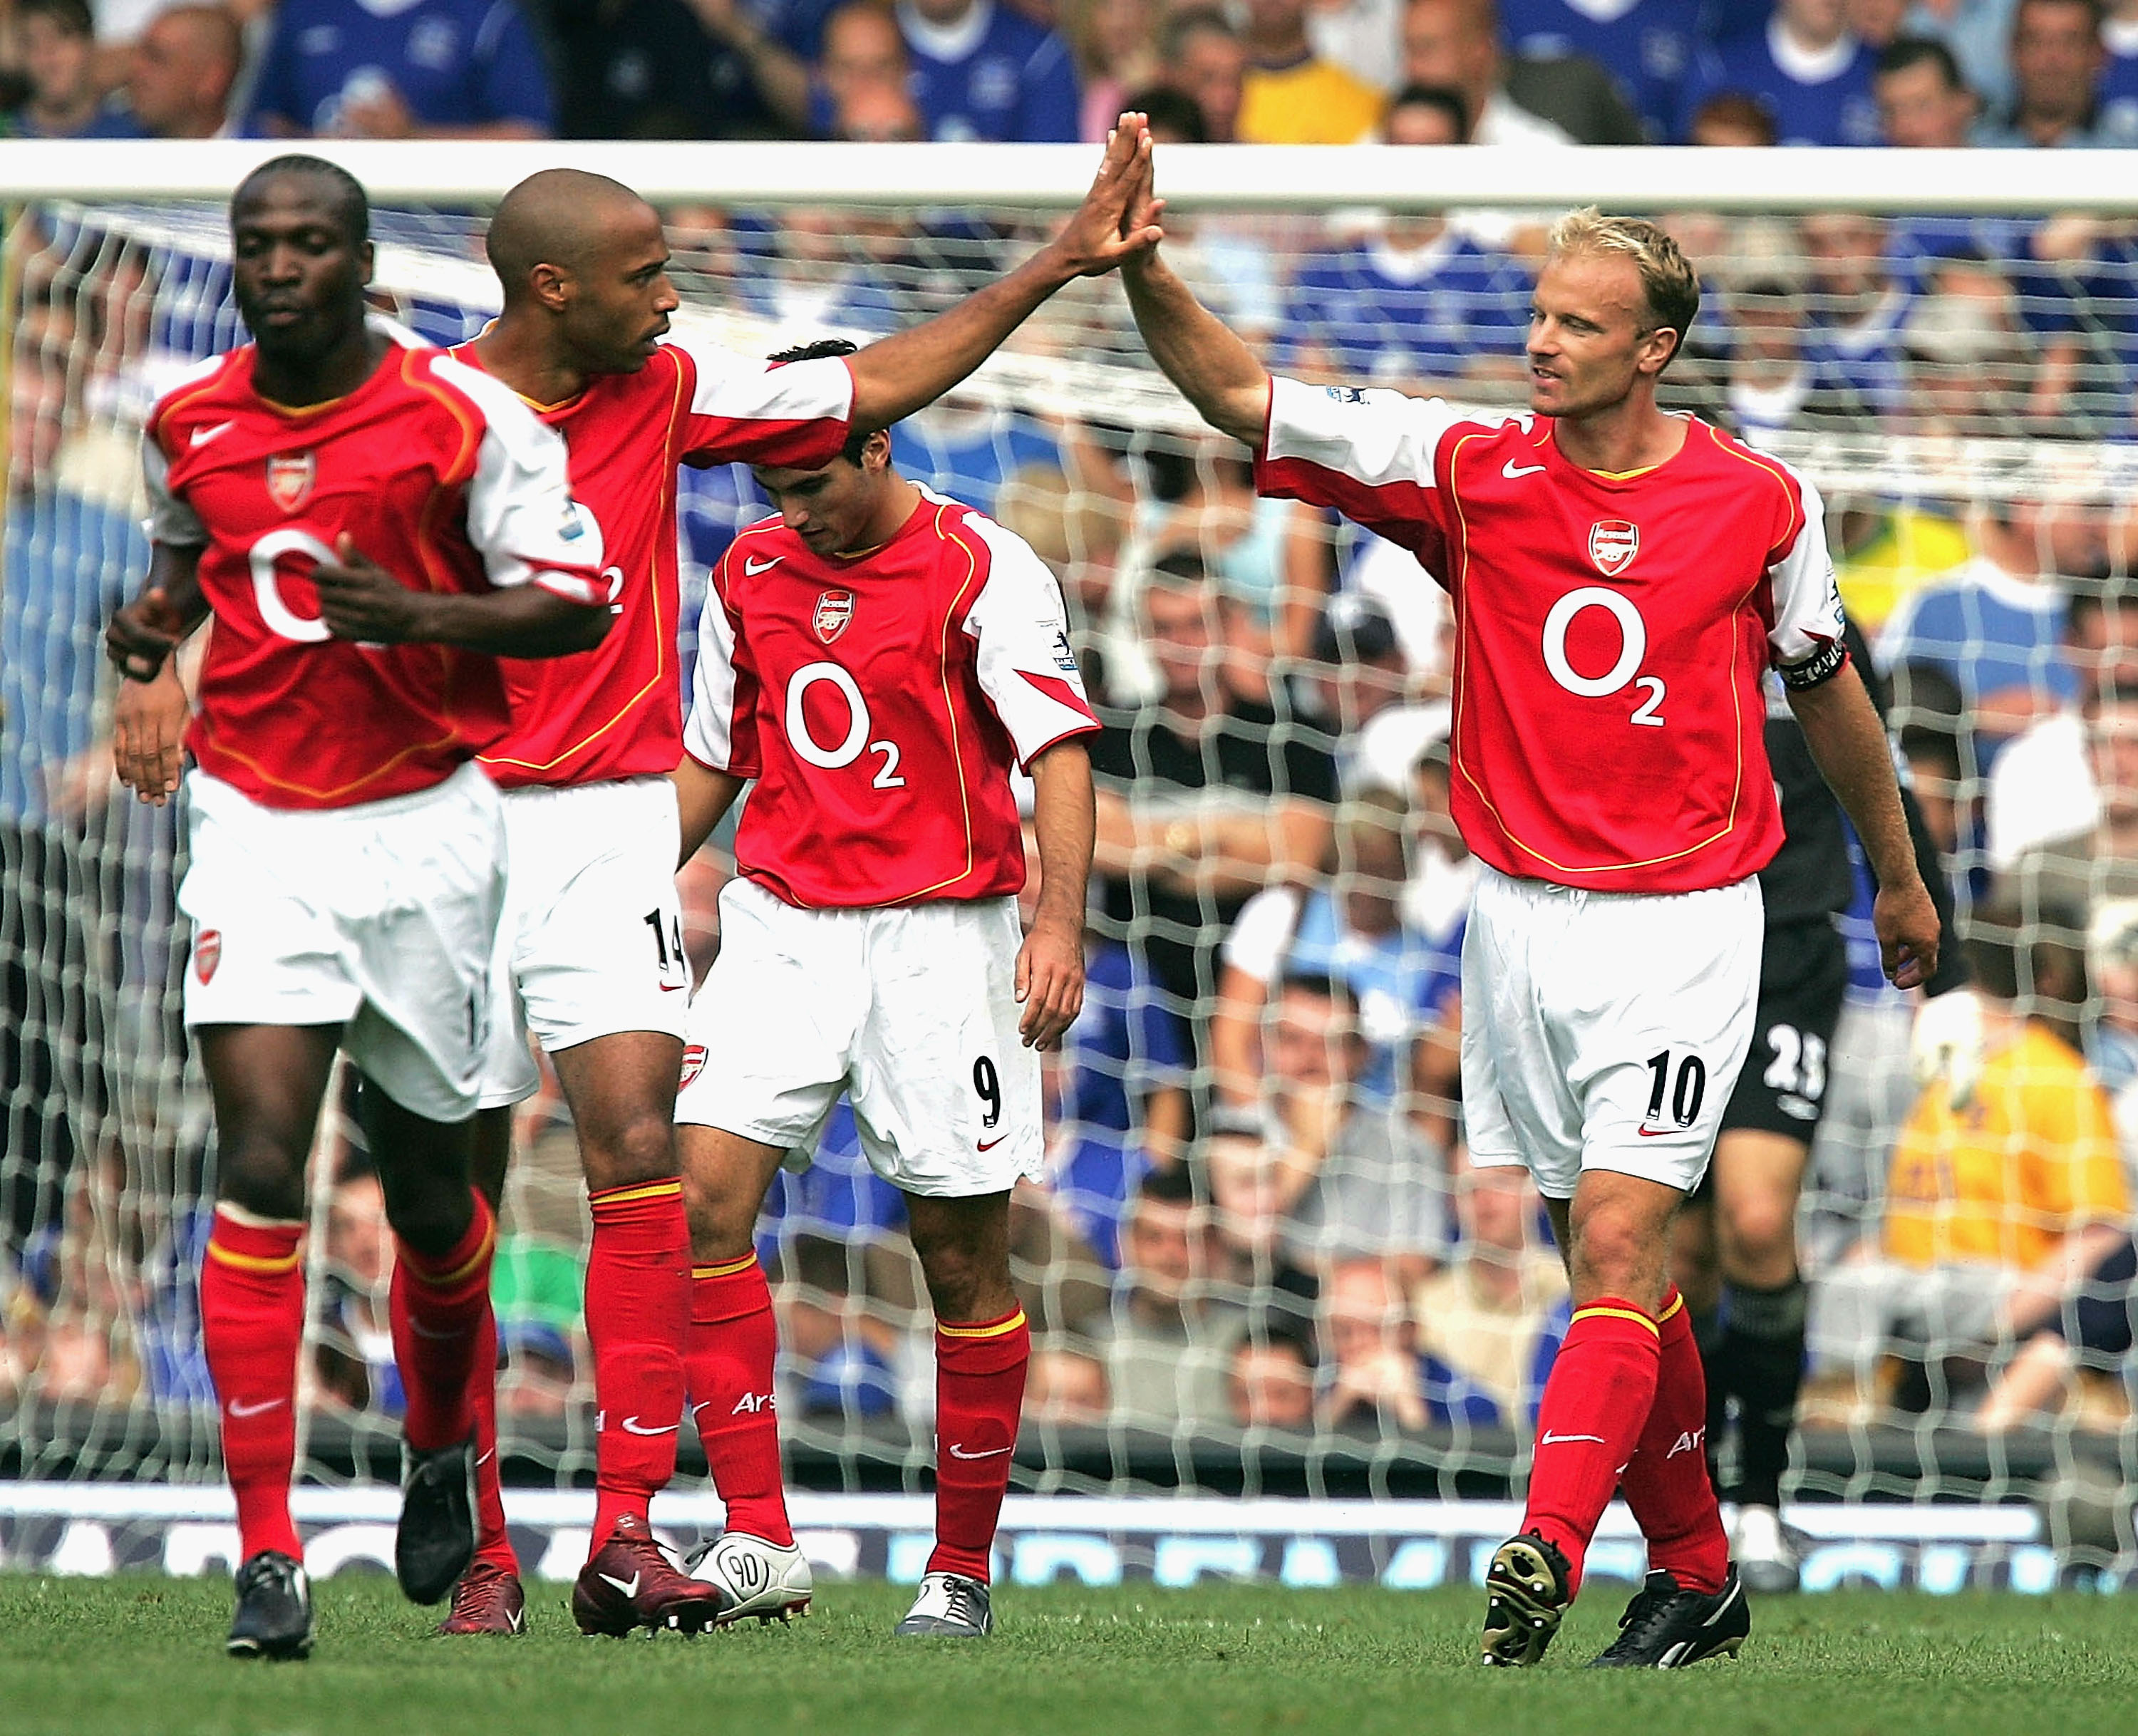 EVERTON, ENGLAND - AUGUST 15:  Dennis Bergkamp of Arsenal (R) celebrates with Thierry Henry after scoring the first goal during the Barclays Premiership match between Everton and Arsenal at Goodison Park on August 15, 2004 in Everton, England. (Photo by A